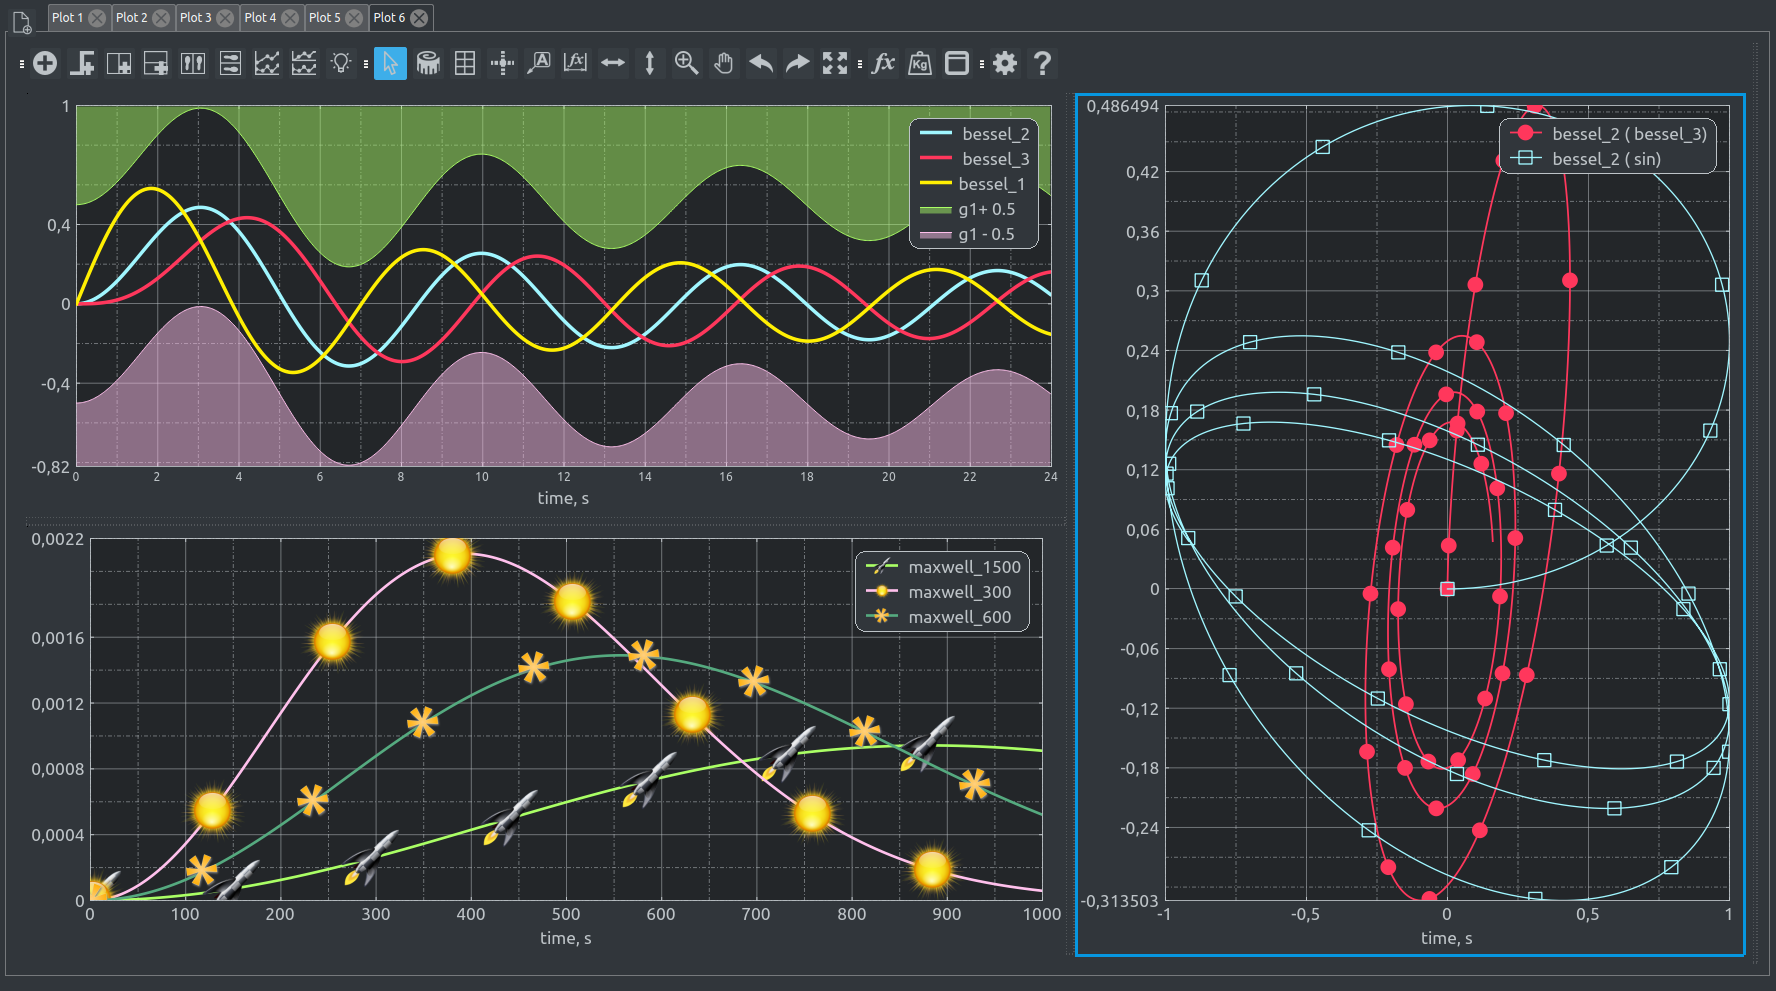 Sophisticated layout with different markers on the graphs